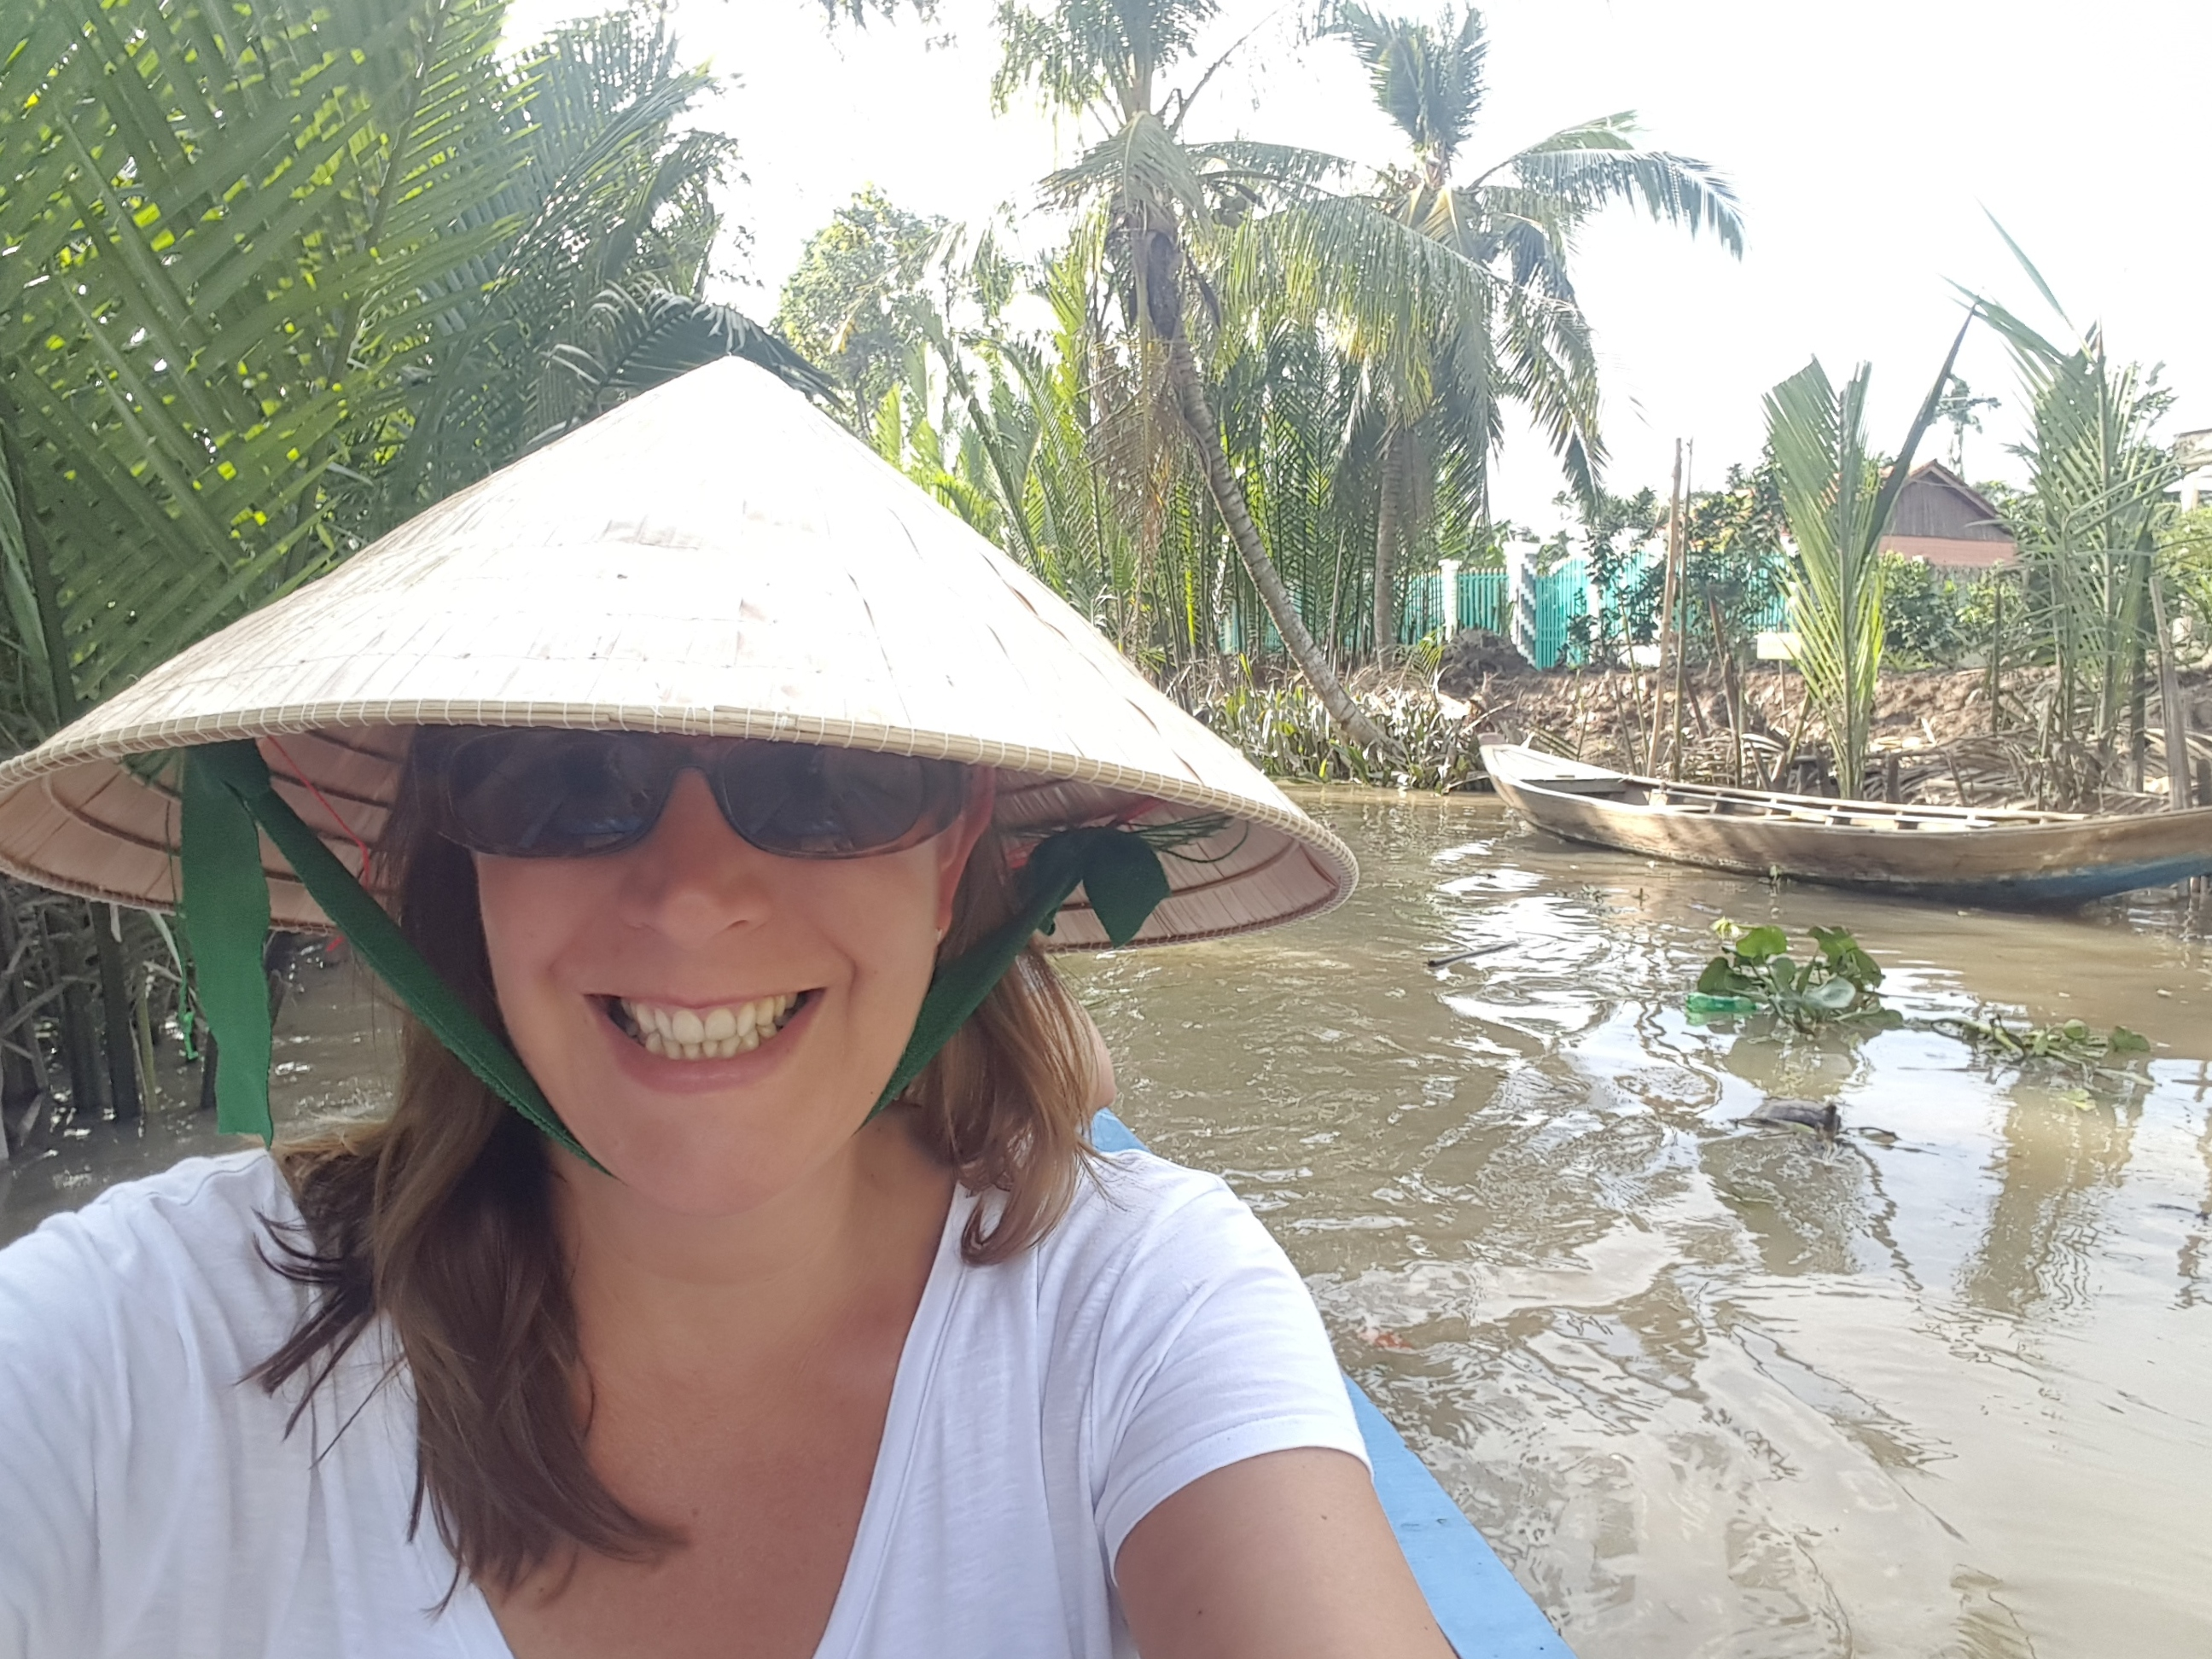 Me wearing a Vietnamese straw hat, smiling broadly, I am in a small wooden boat, rowing along a muddy canal lined with tropical trees